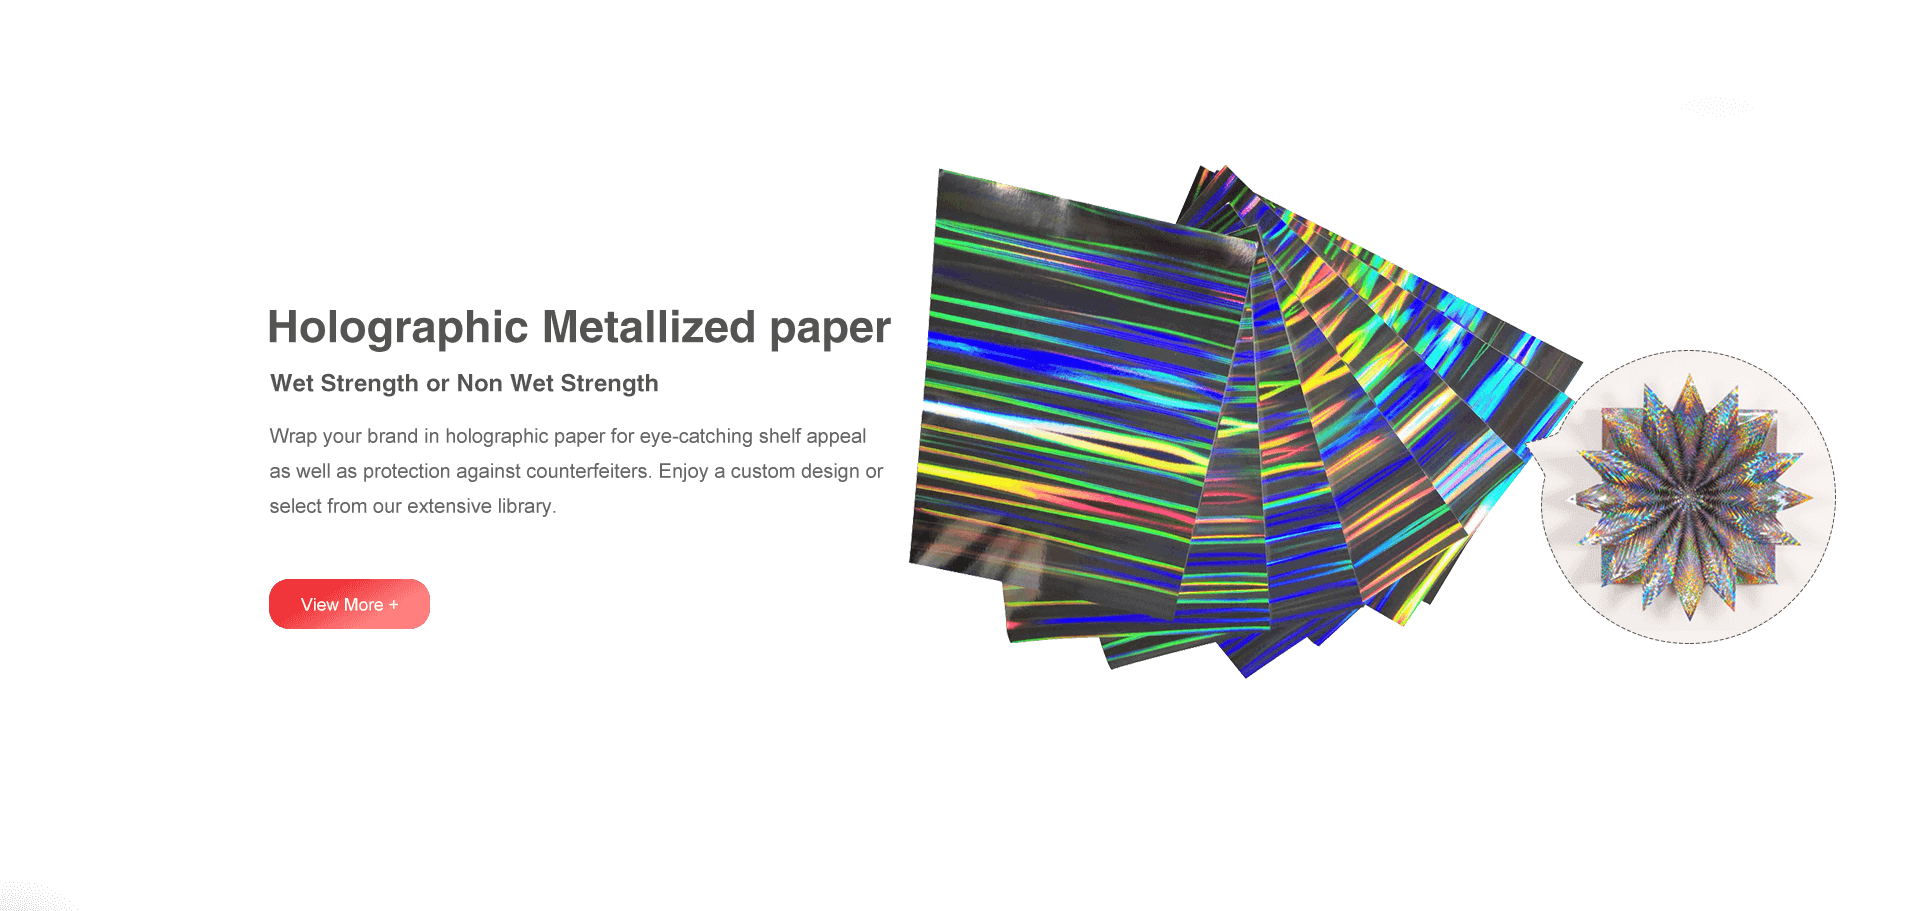 Holographic Metallized Paper